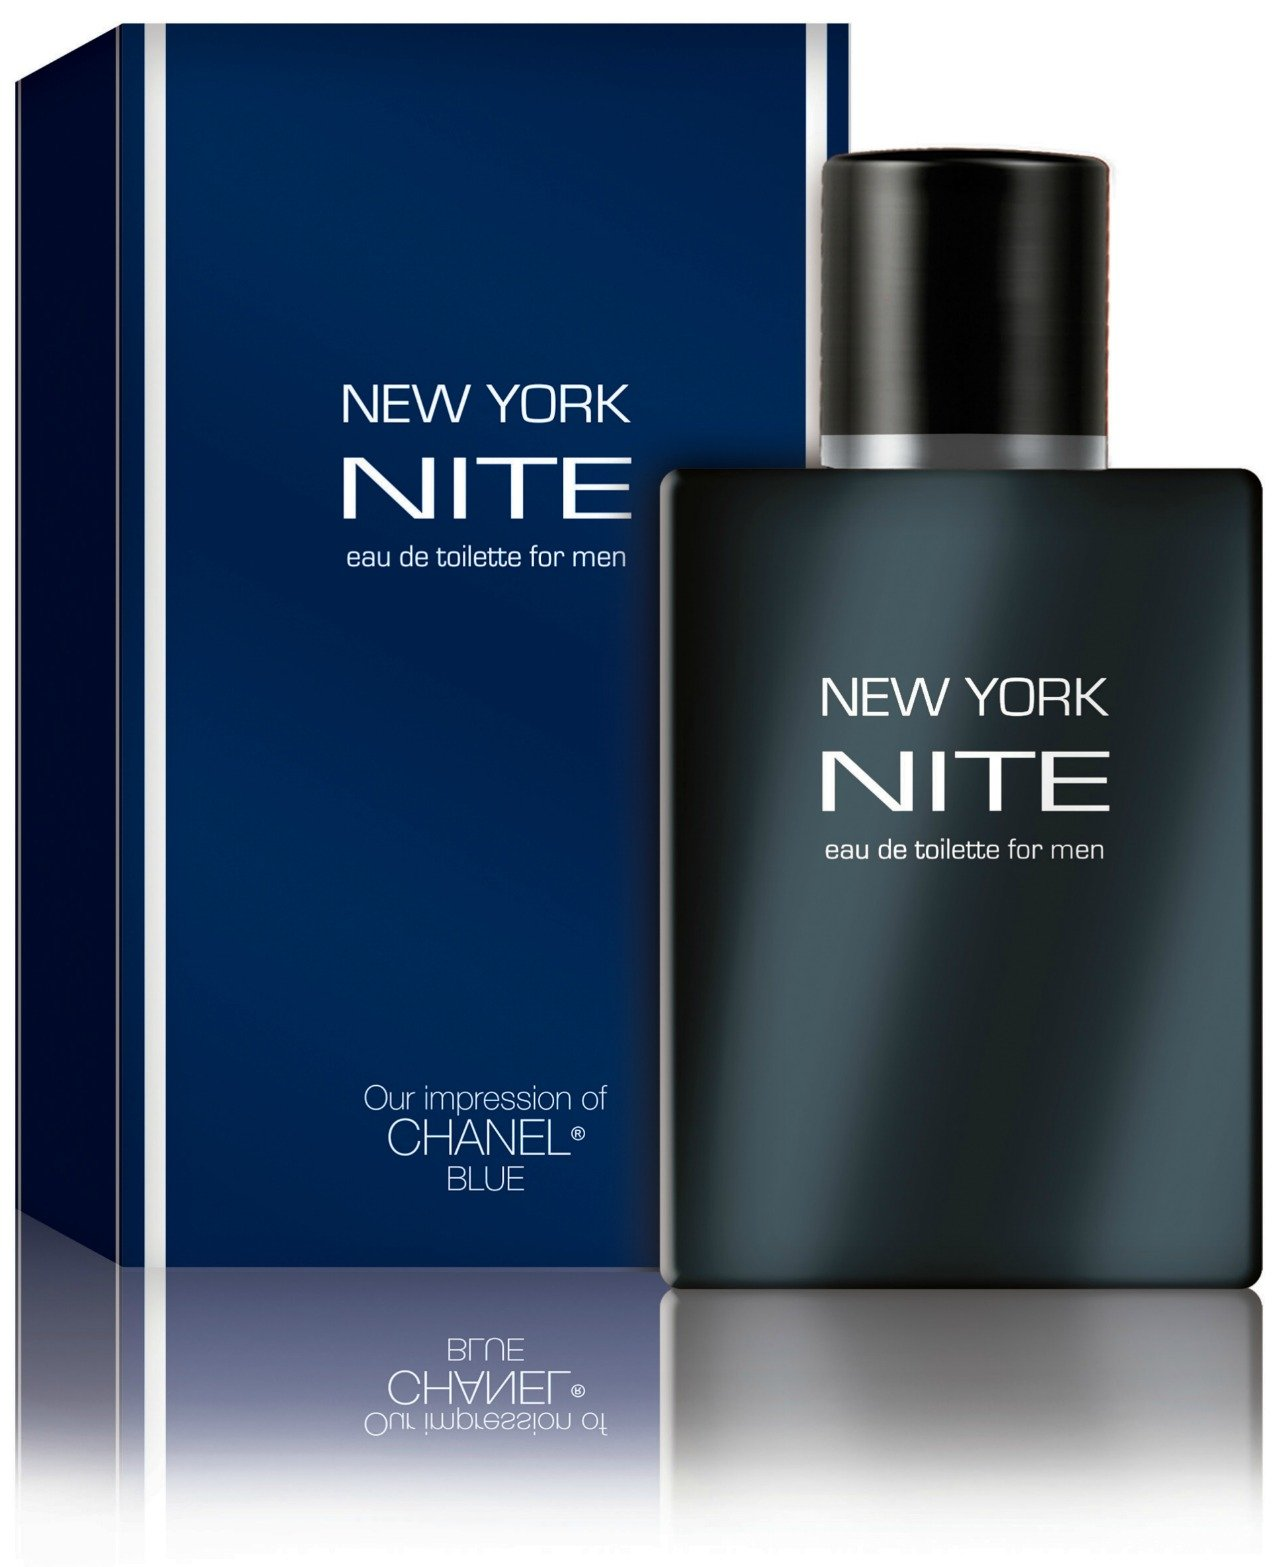 New York Nite - Eau De Toilette for Men - Impression of Chanel Blue, 3.3 fl oz